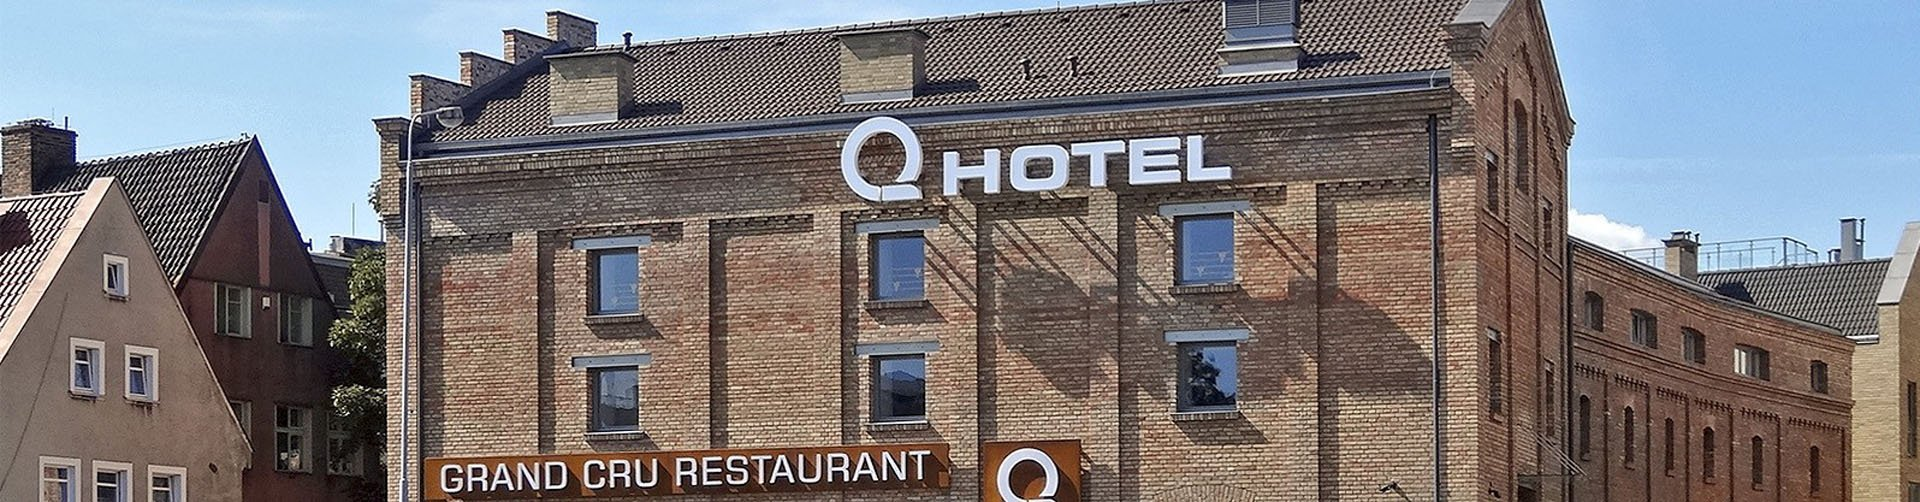 Banner Hotel Grand Cru in Gdansk